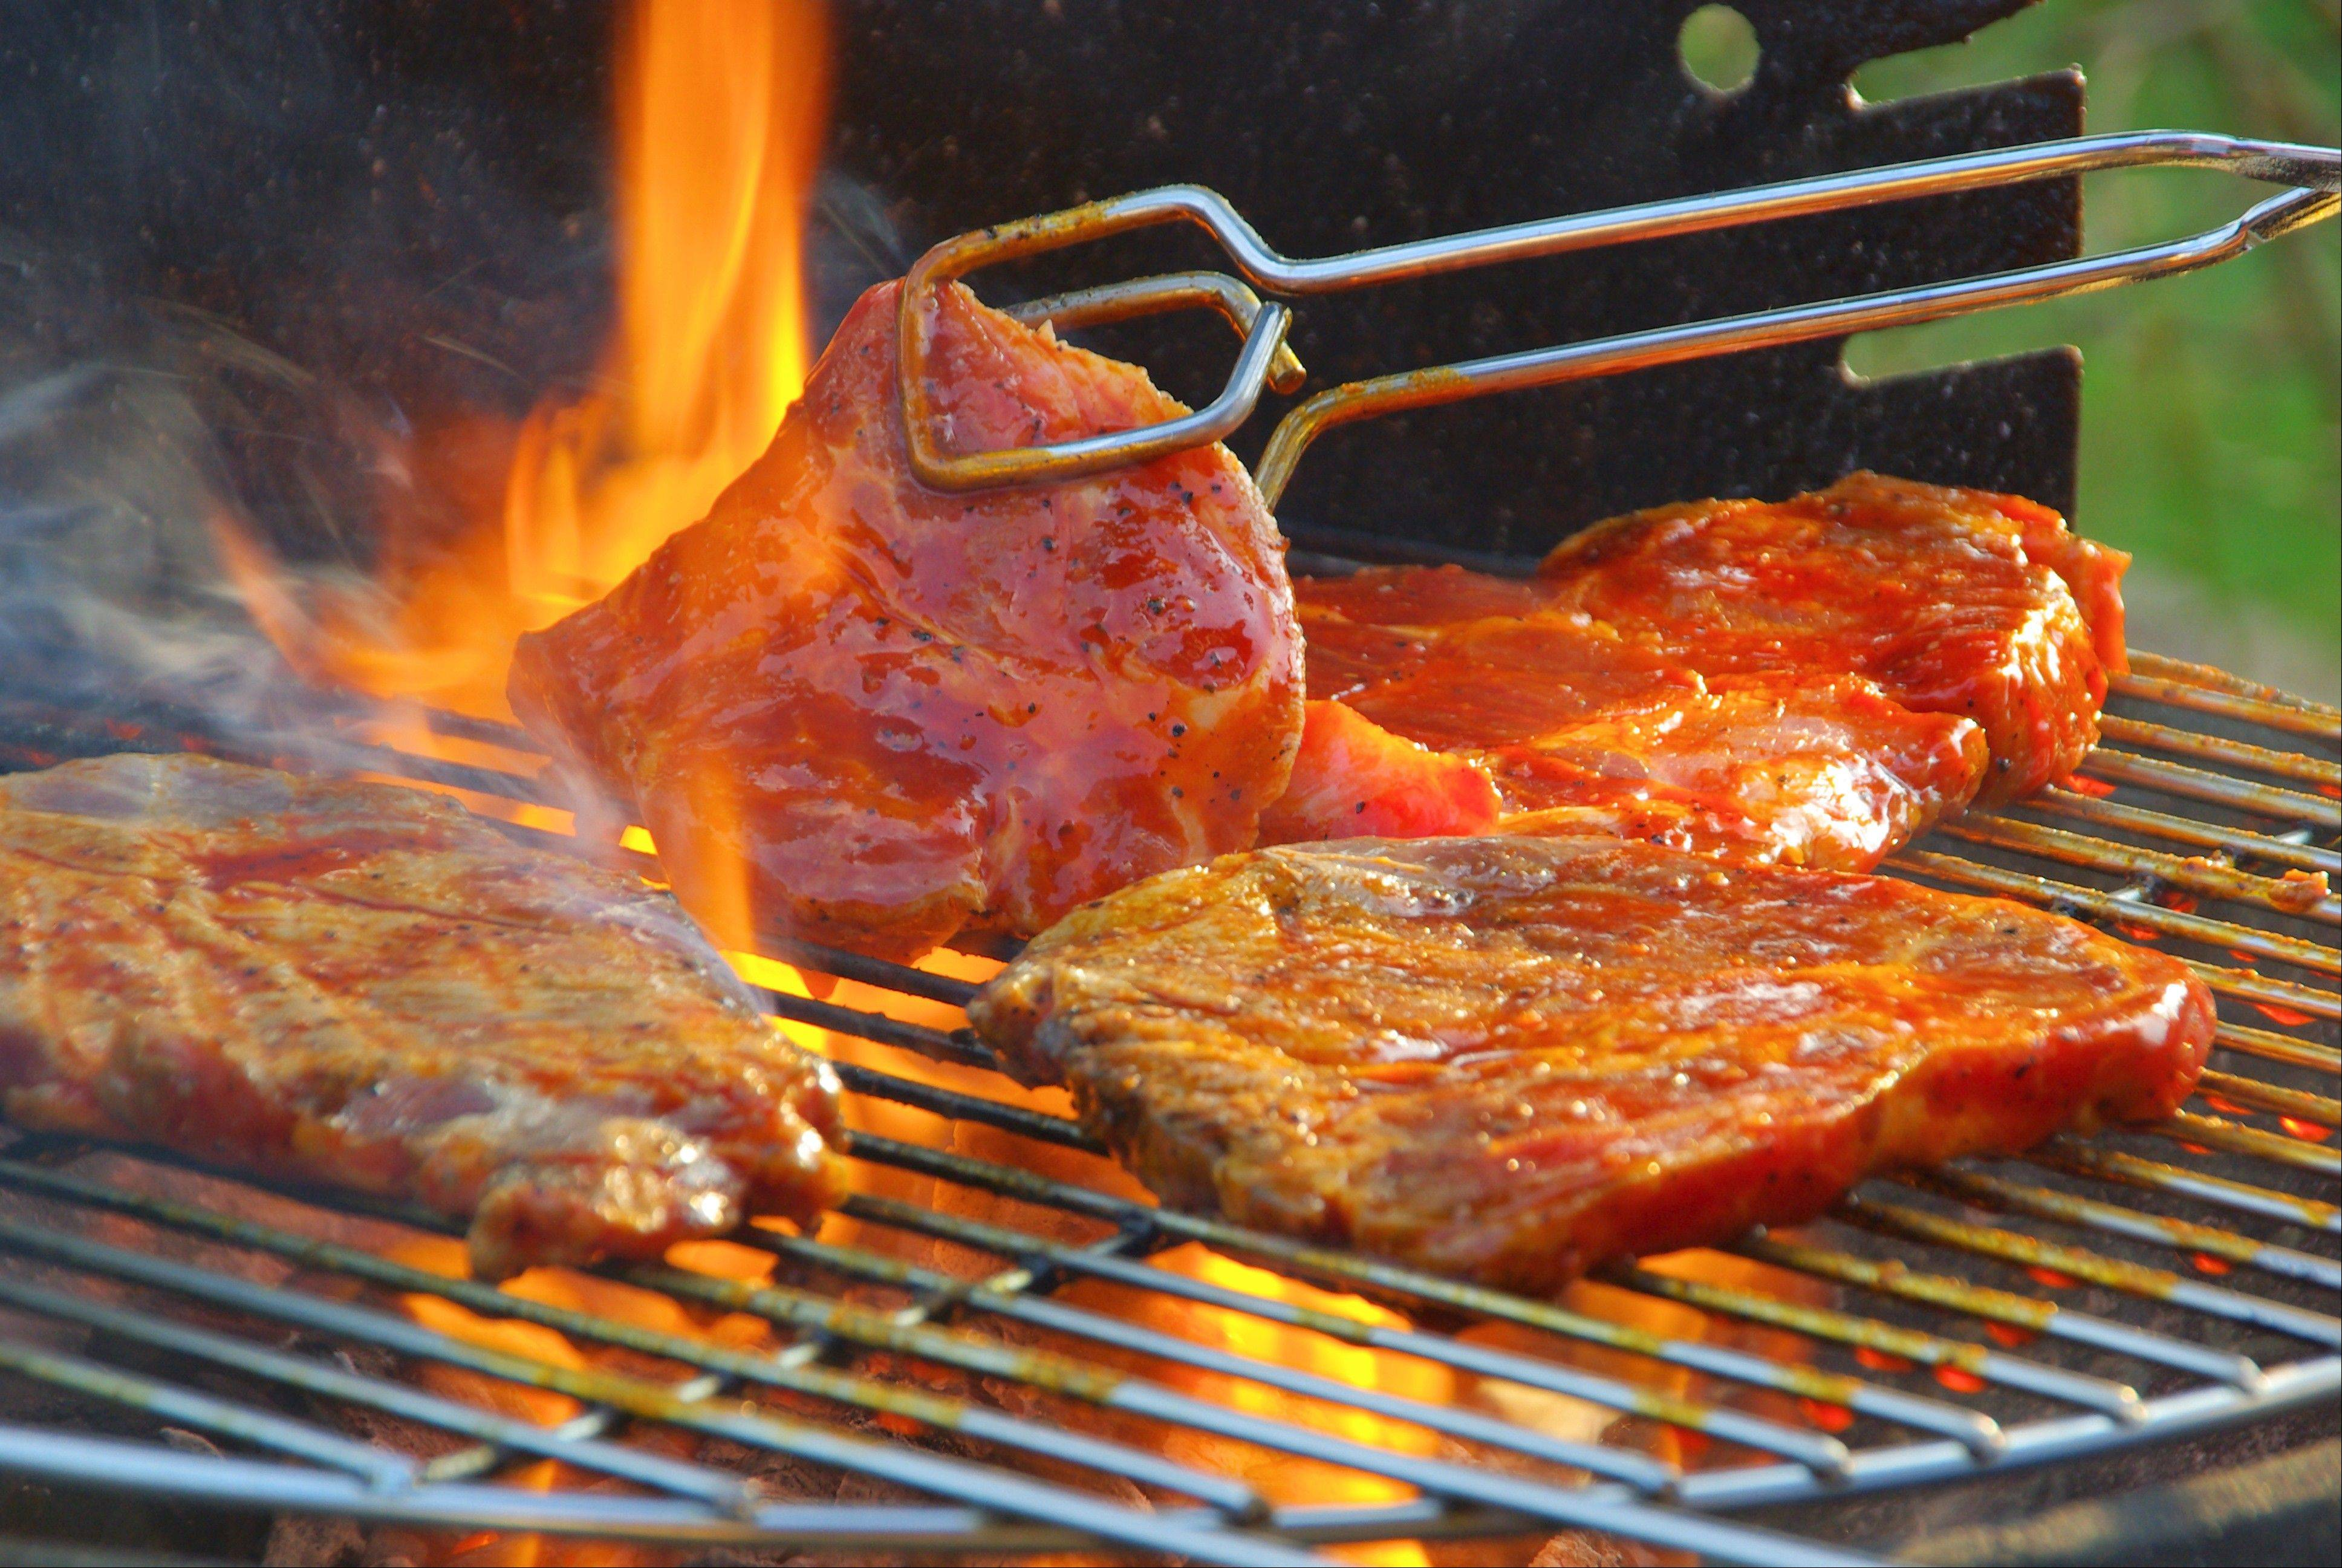 The best way to quell a flare-up is to put the lid back on the grill.